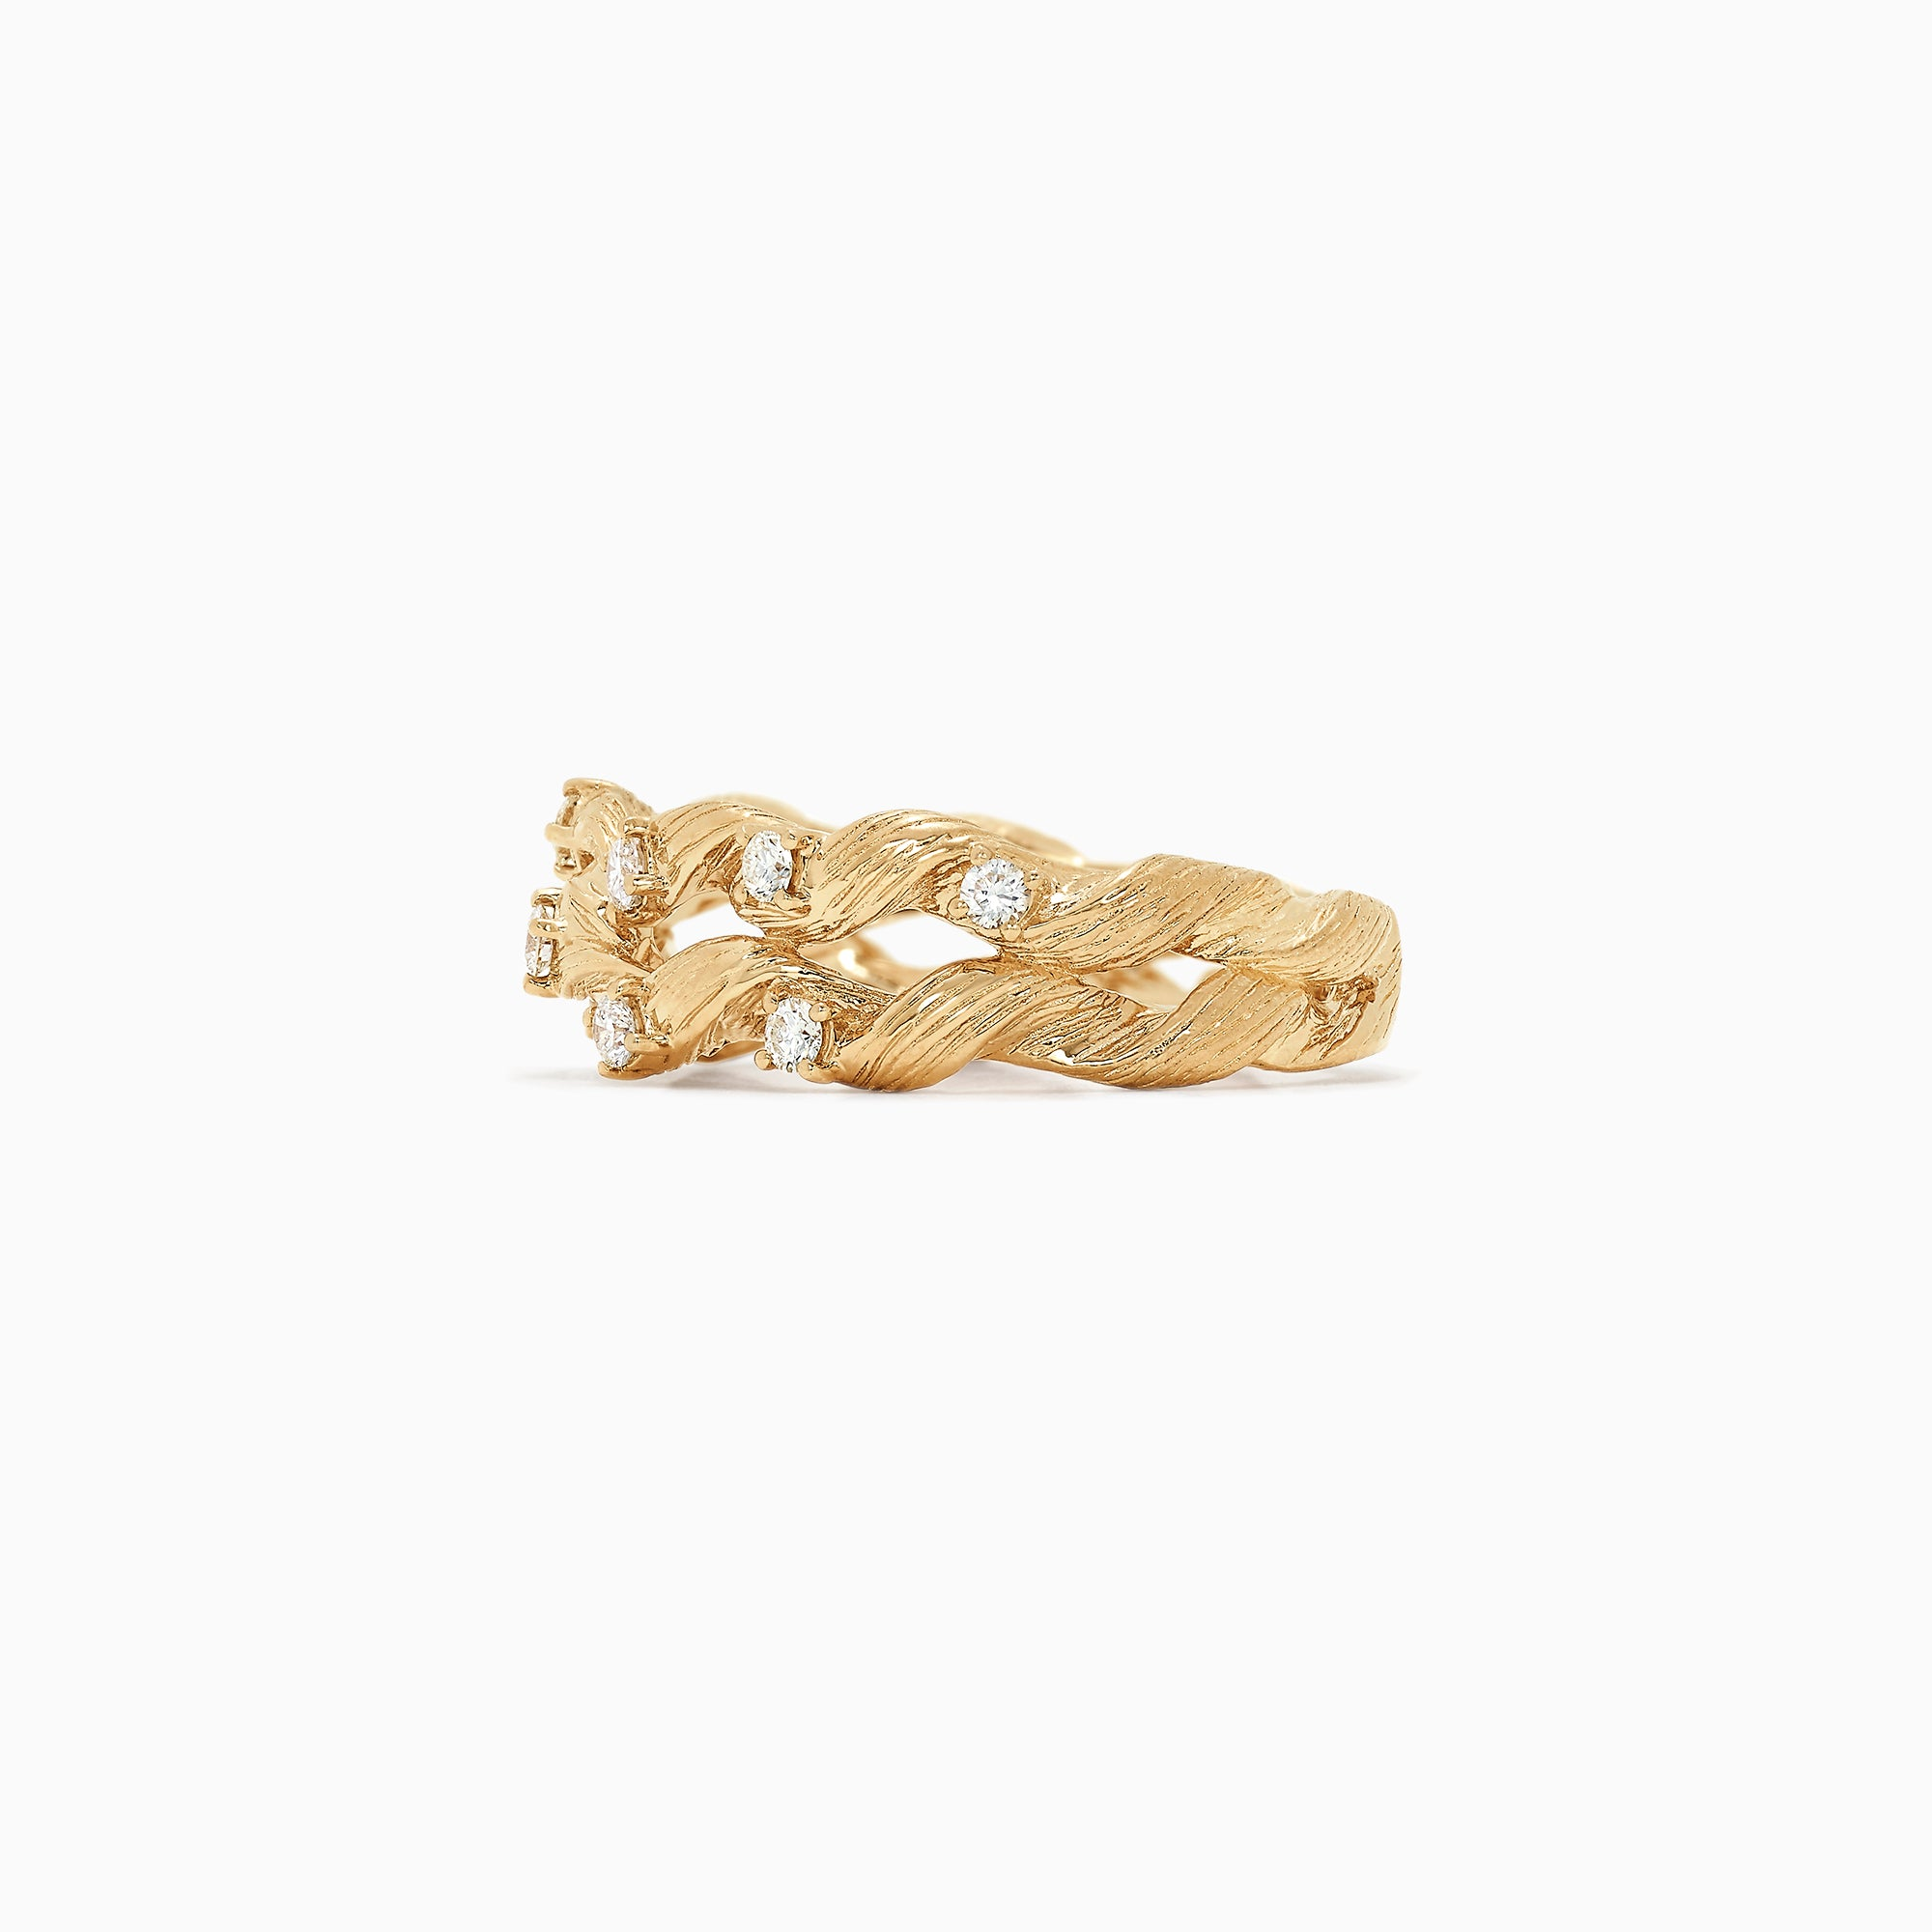 Effy D'Oro 14K Yellow Gold Diamond Ring, 0.33 TCW